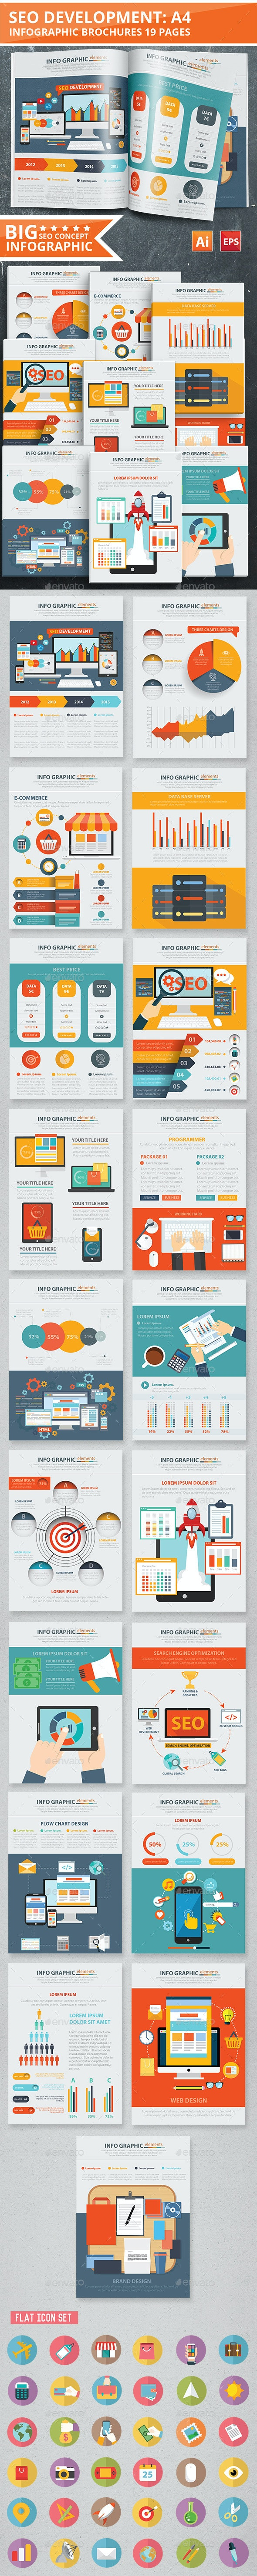 SEO Development Infographic Design 19 Pages - Infographics